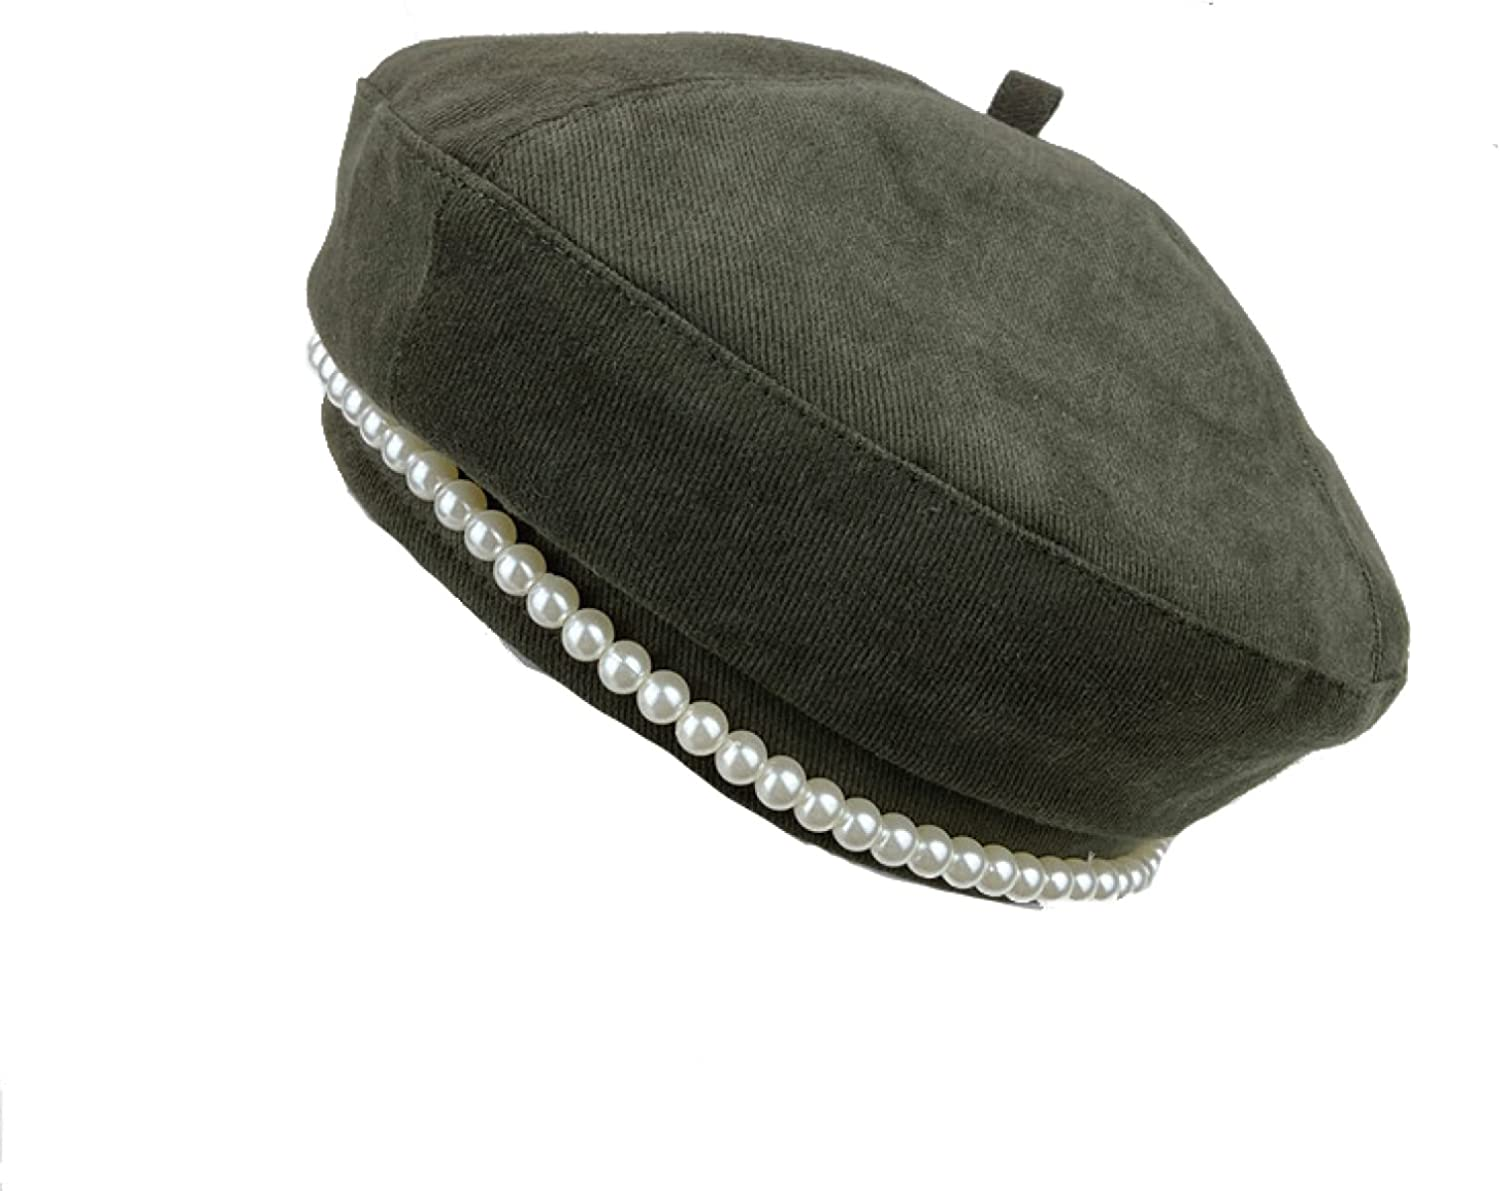 ASO-SLING Women's Cotton Solid Color Berets Hat with Pearl Ladies Girls Beret Cap Cabbie Hats Outdoor Newsboy Caps